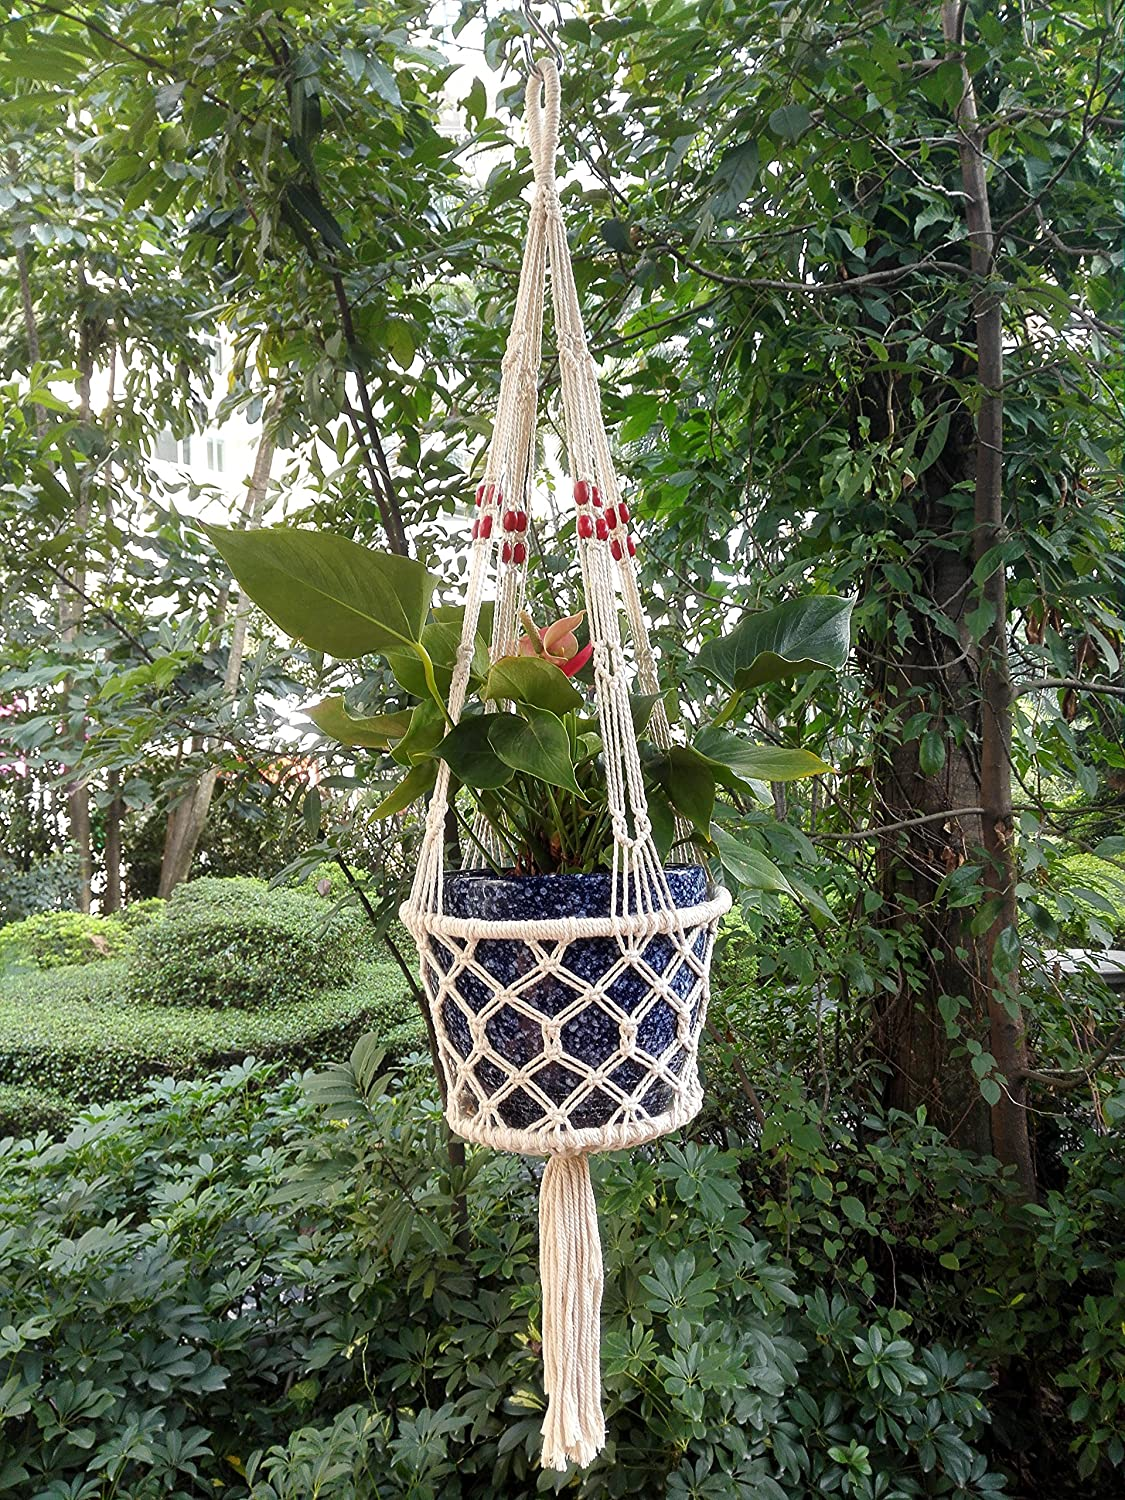 4 Legs Macrame Cotton Plant Holders with Bamboo Ring Inside with Wood Bead Decoration .Nautral Beige Color, 36-inches Length (Without the Pot and Plant)